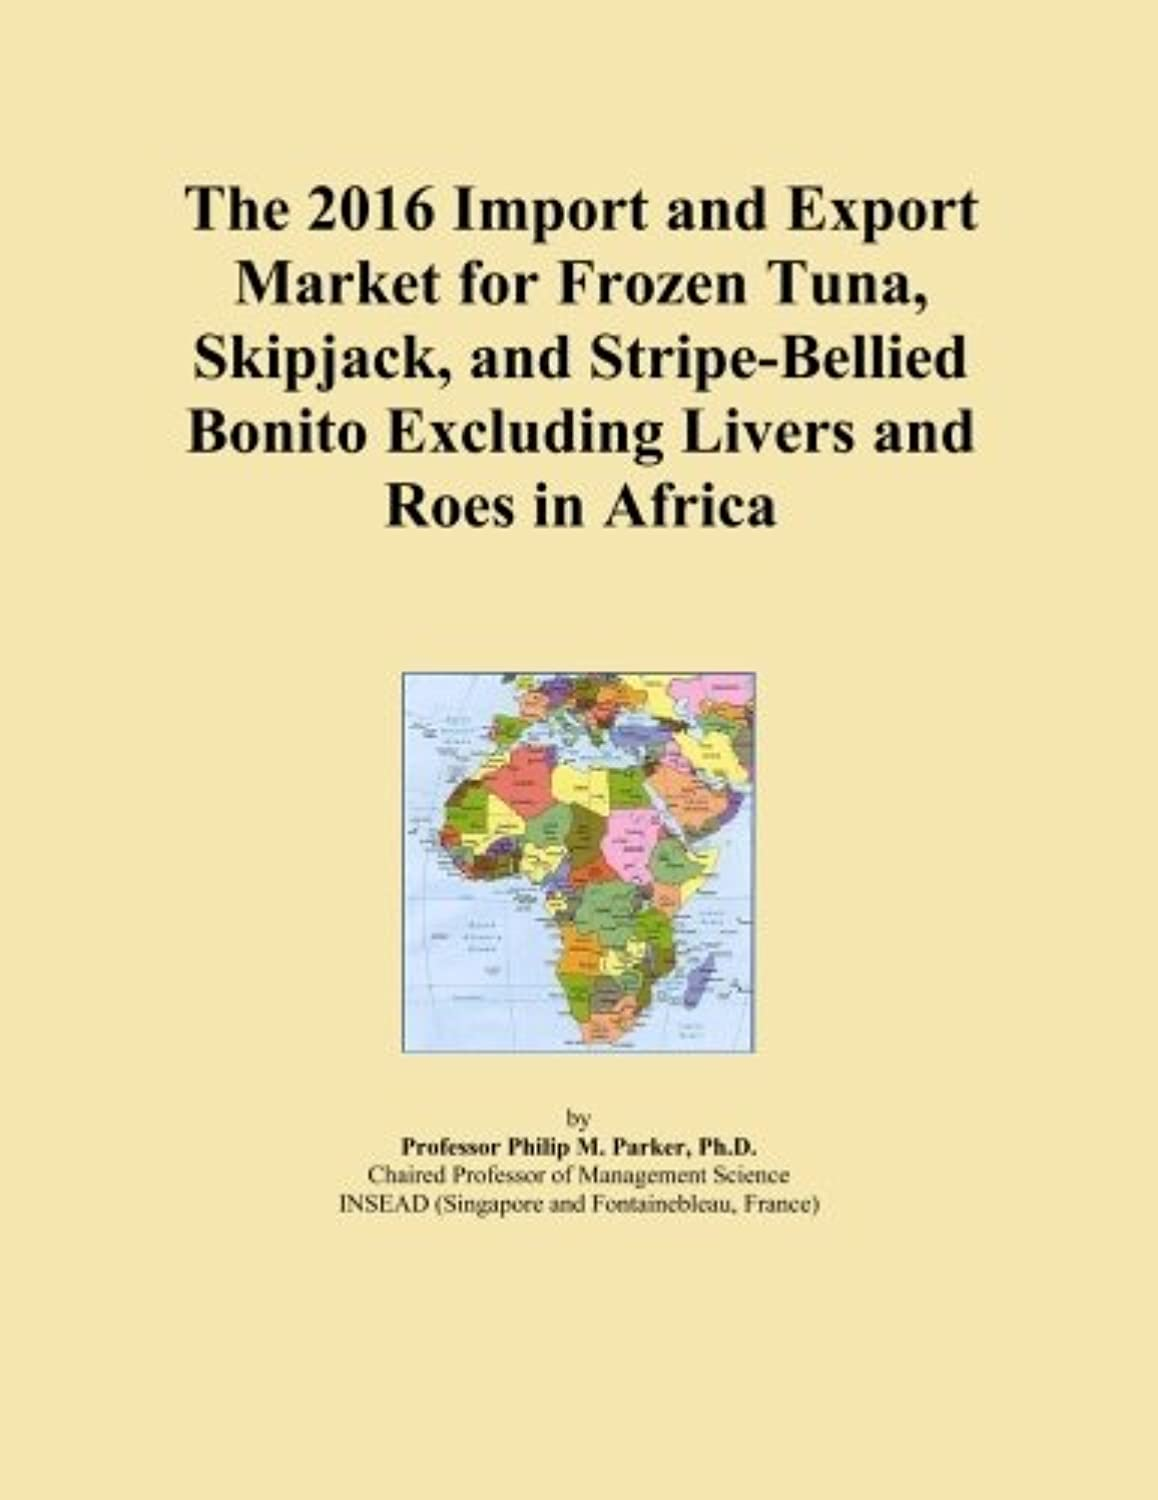 The 2016 Import and Export Market for Frozen Tuna, Skipjack, and Stripe-Bellied Bonito Excluding Livers and Roes in Africa